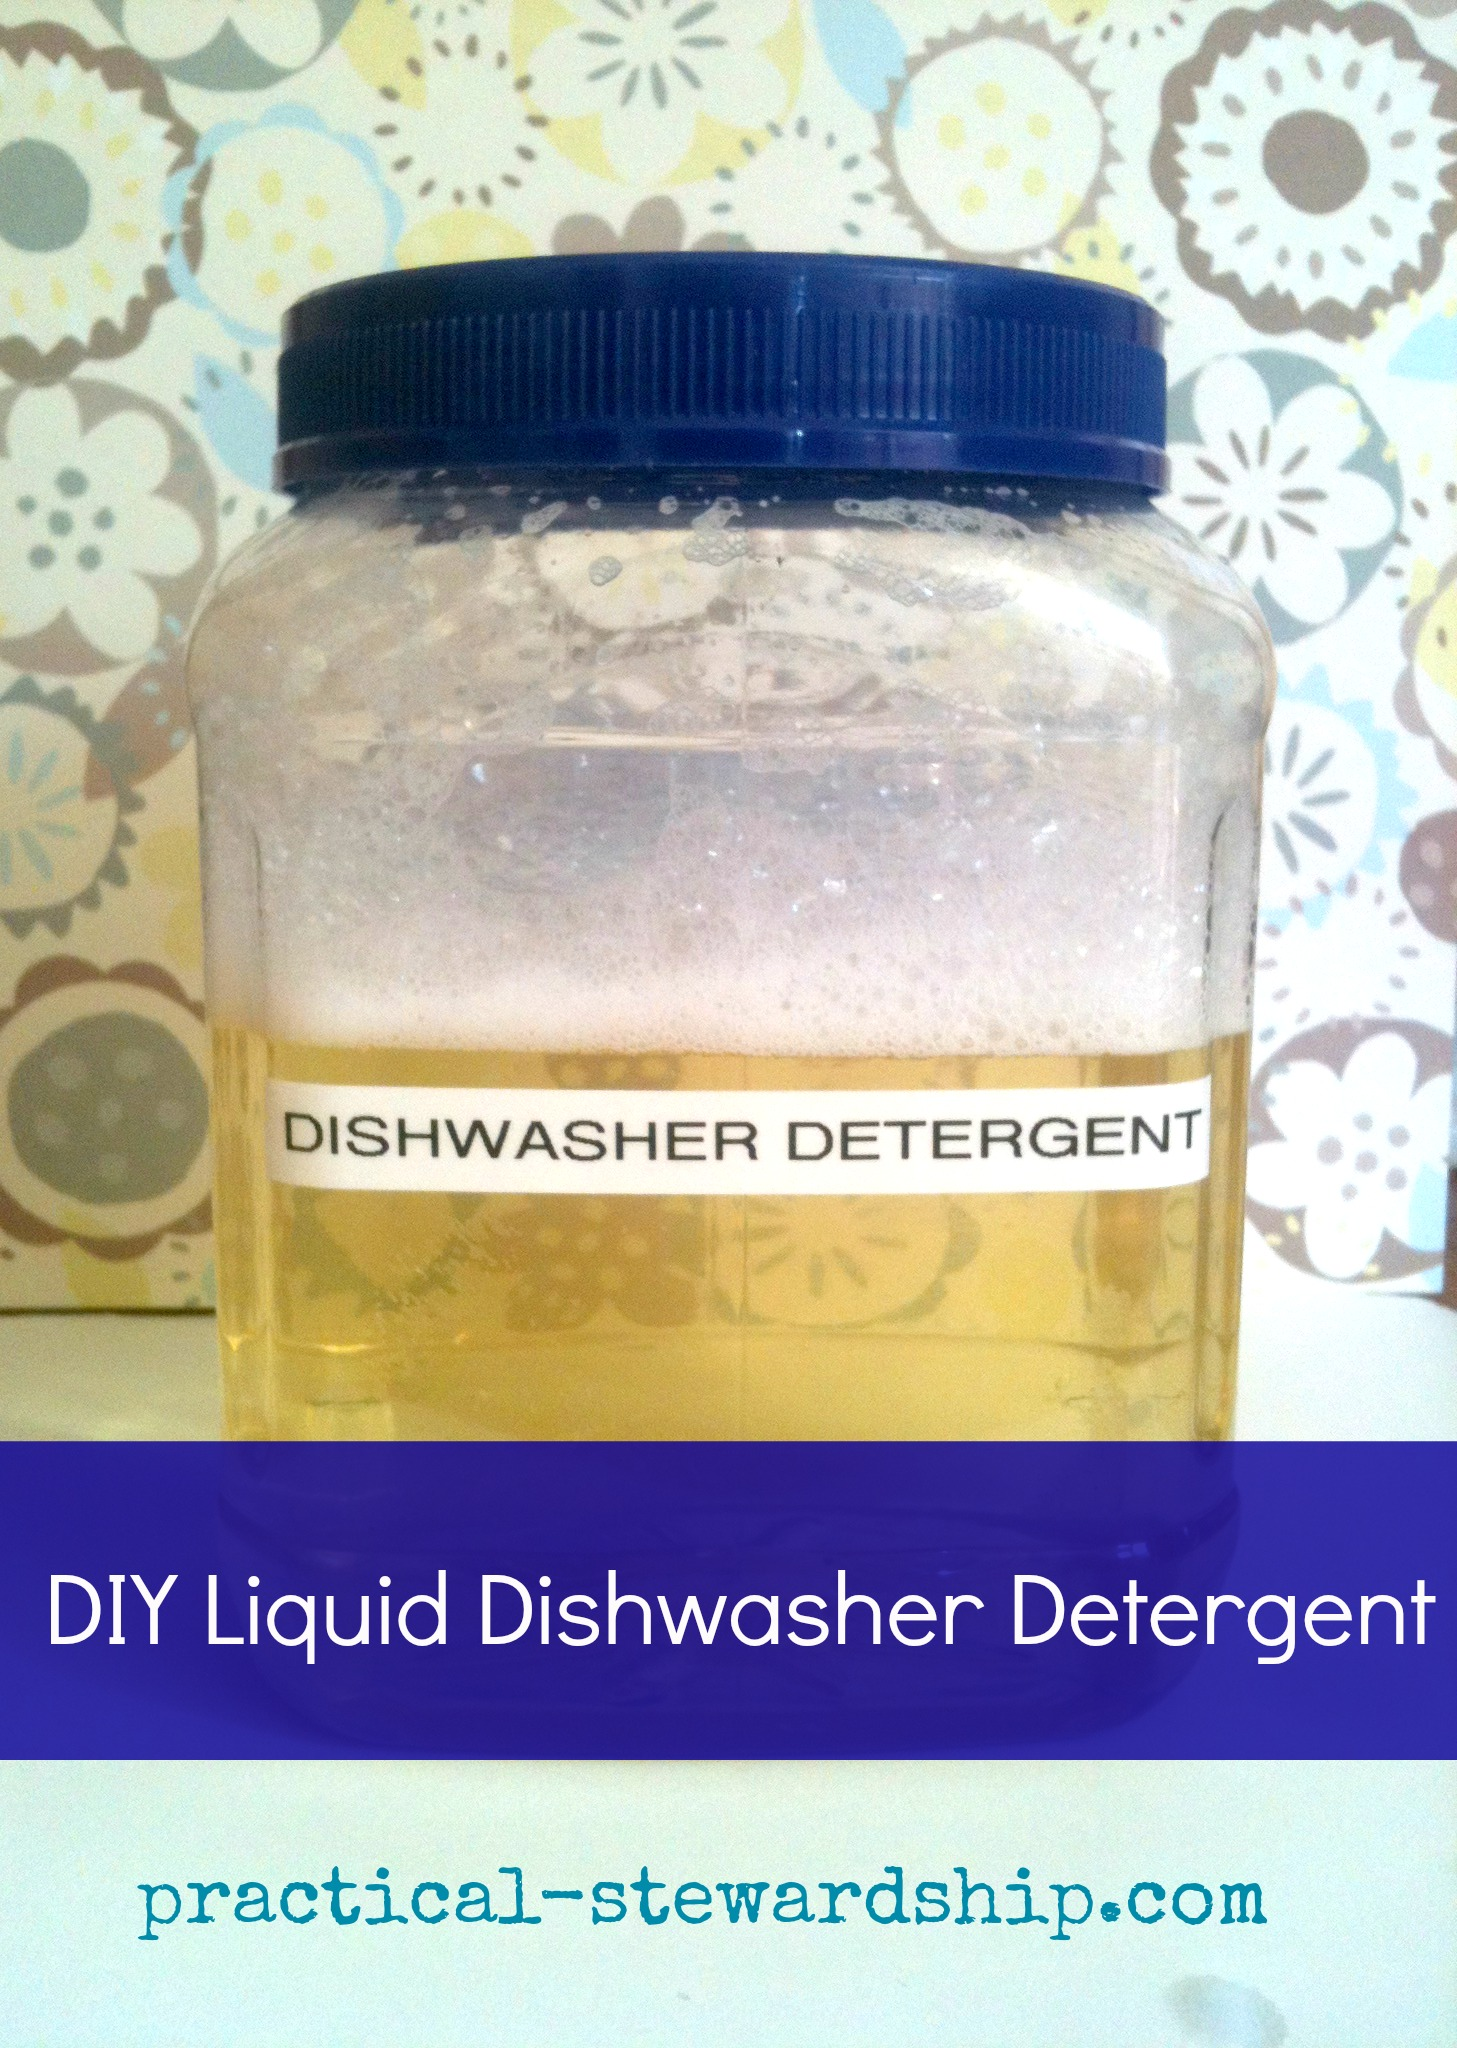 Revised & Improved Homemade Three Ingredient Liquid Dishwasher Detergent